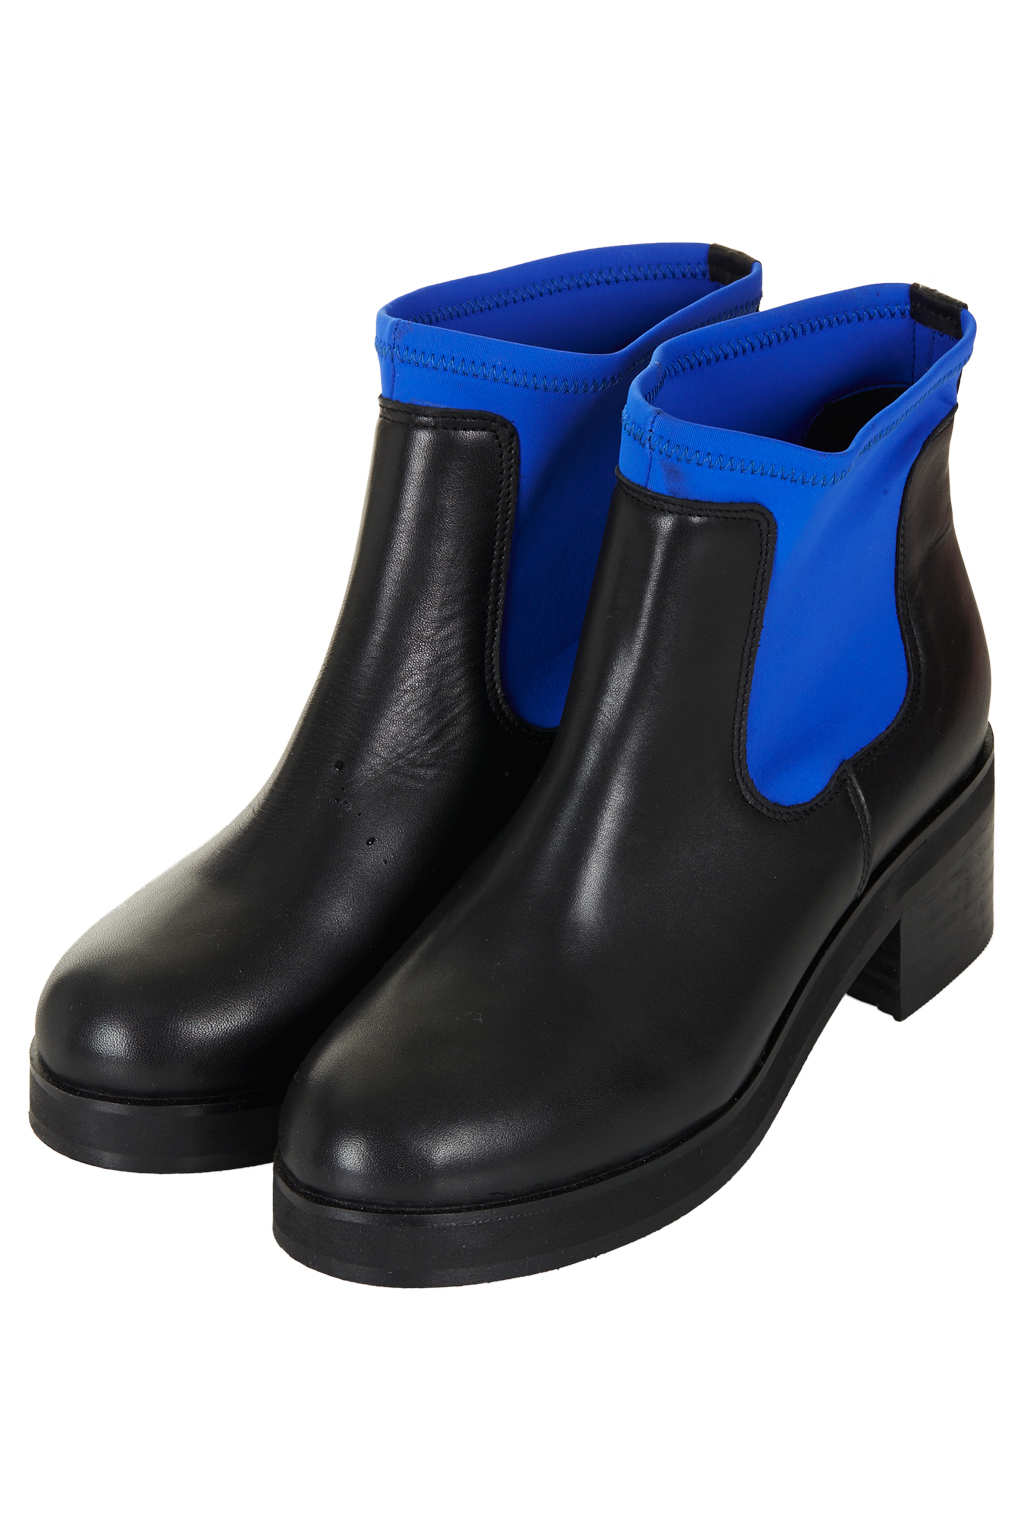 TOPSHOP Abigail Neoprene Ankle Boots in Blue Black (Blue)